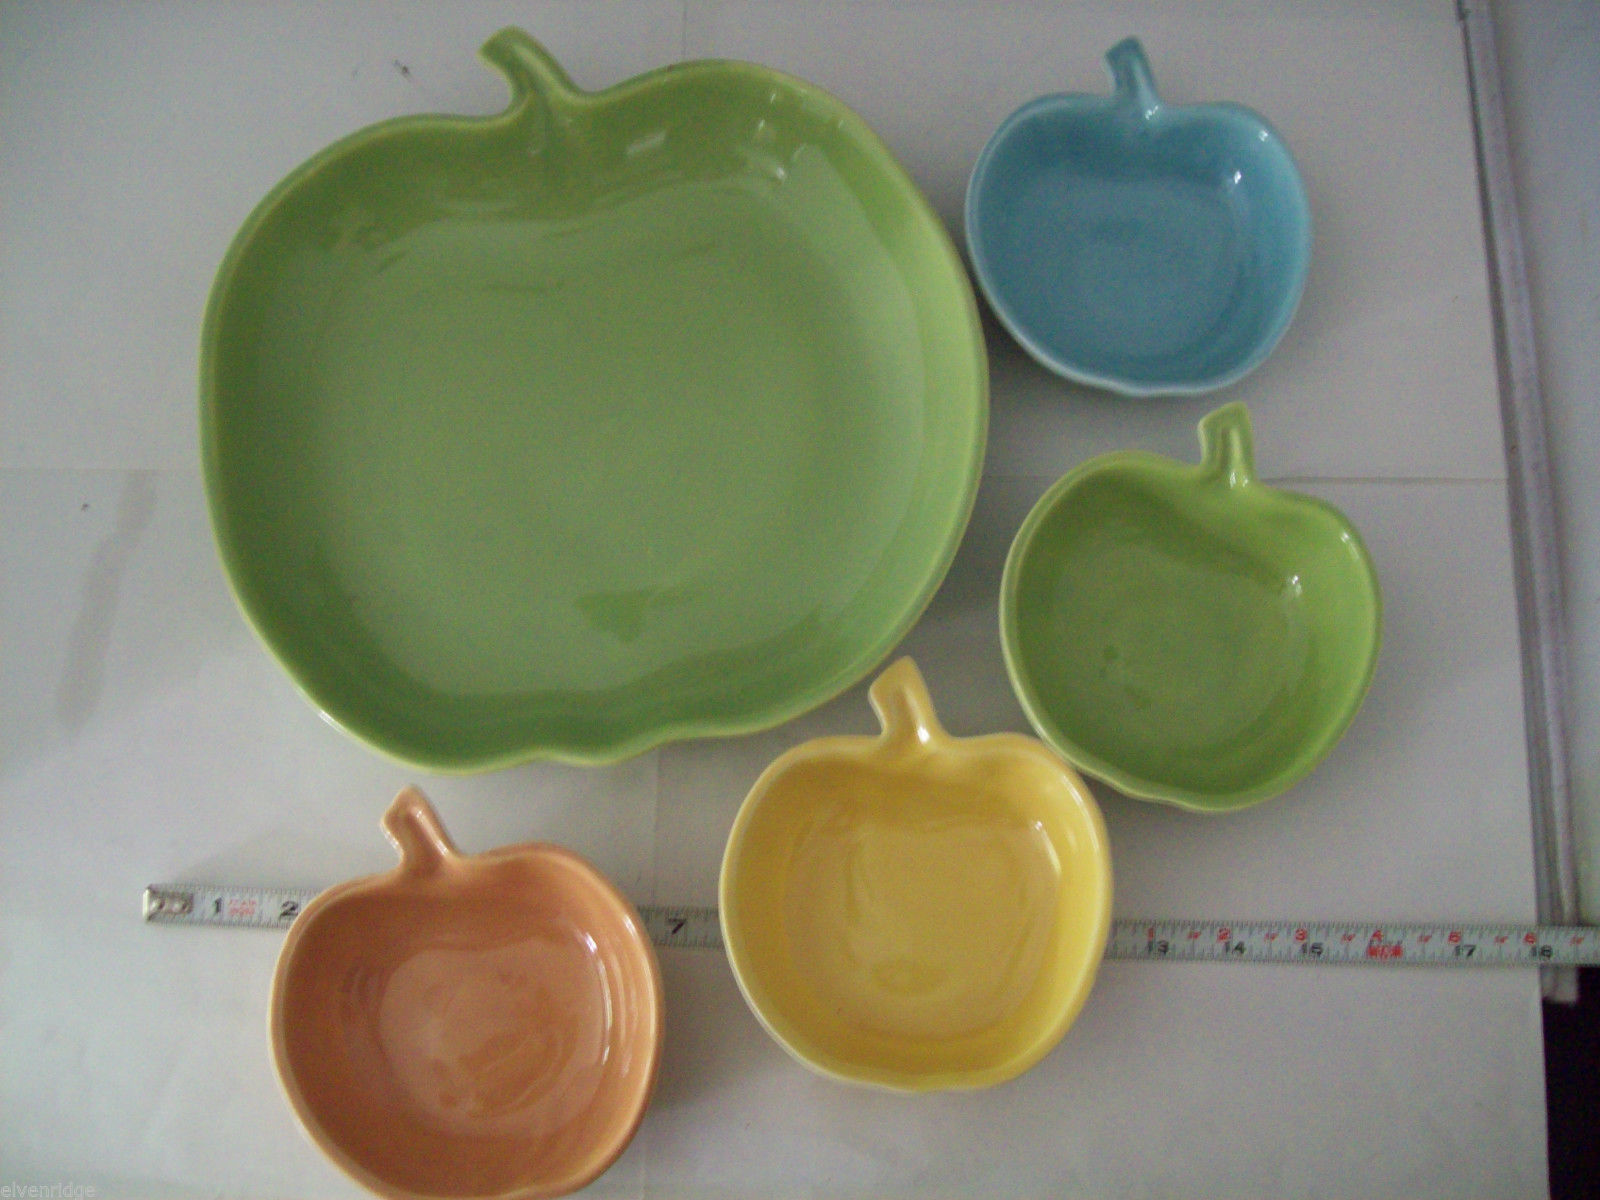 Vintage apple ceramic serving set in green blue yellow made in California